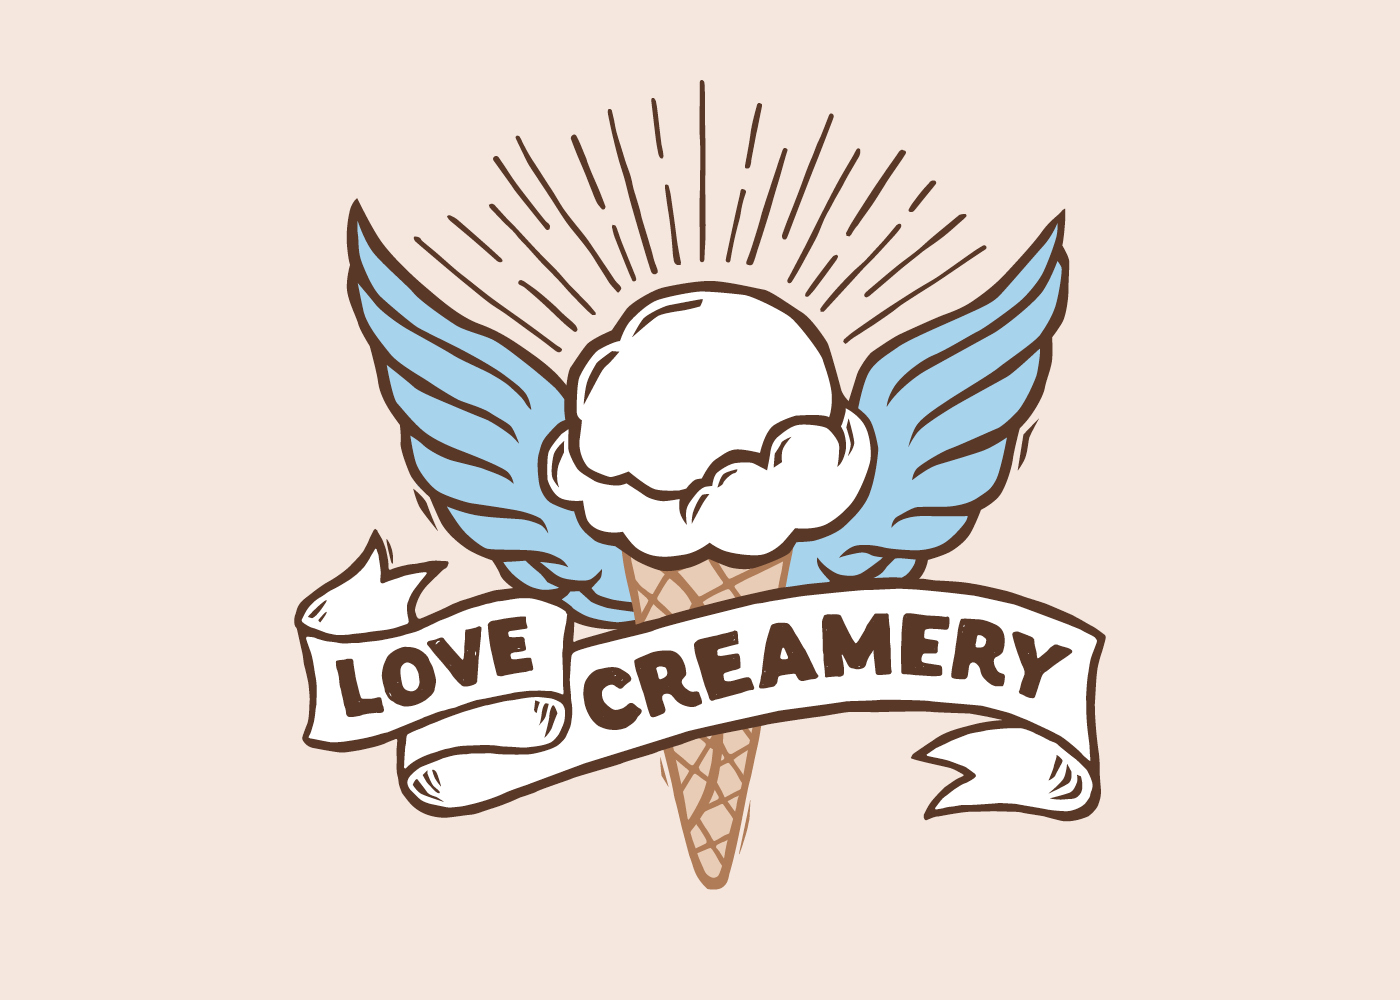 LoveCreamery-ThursShowcase1.jpg